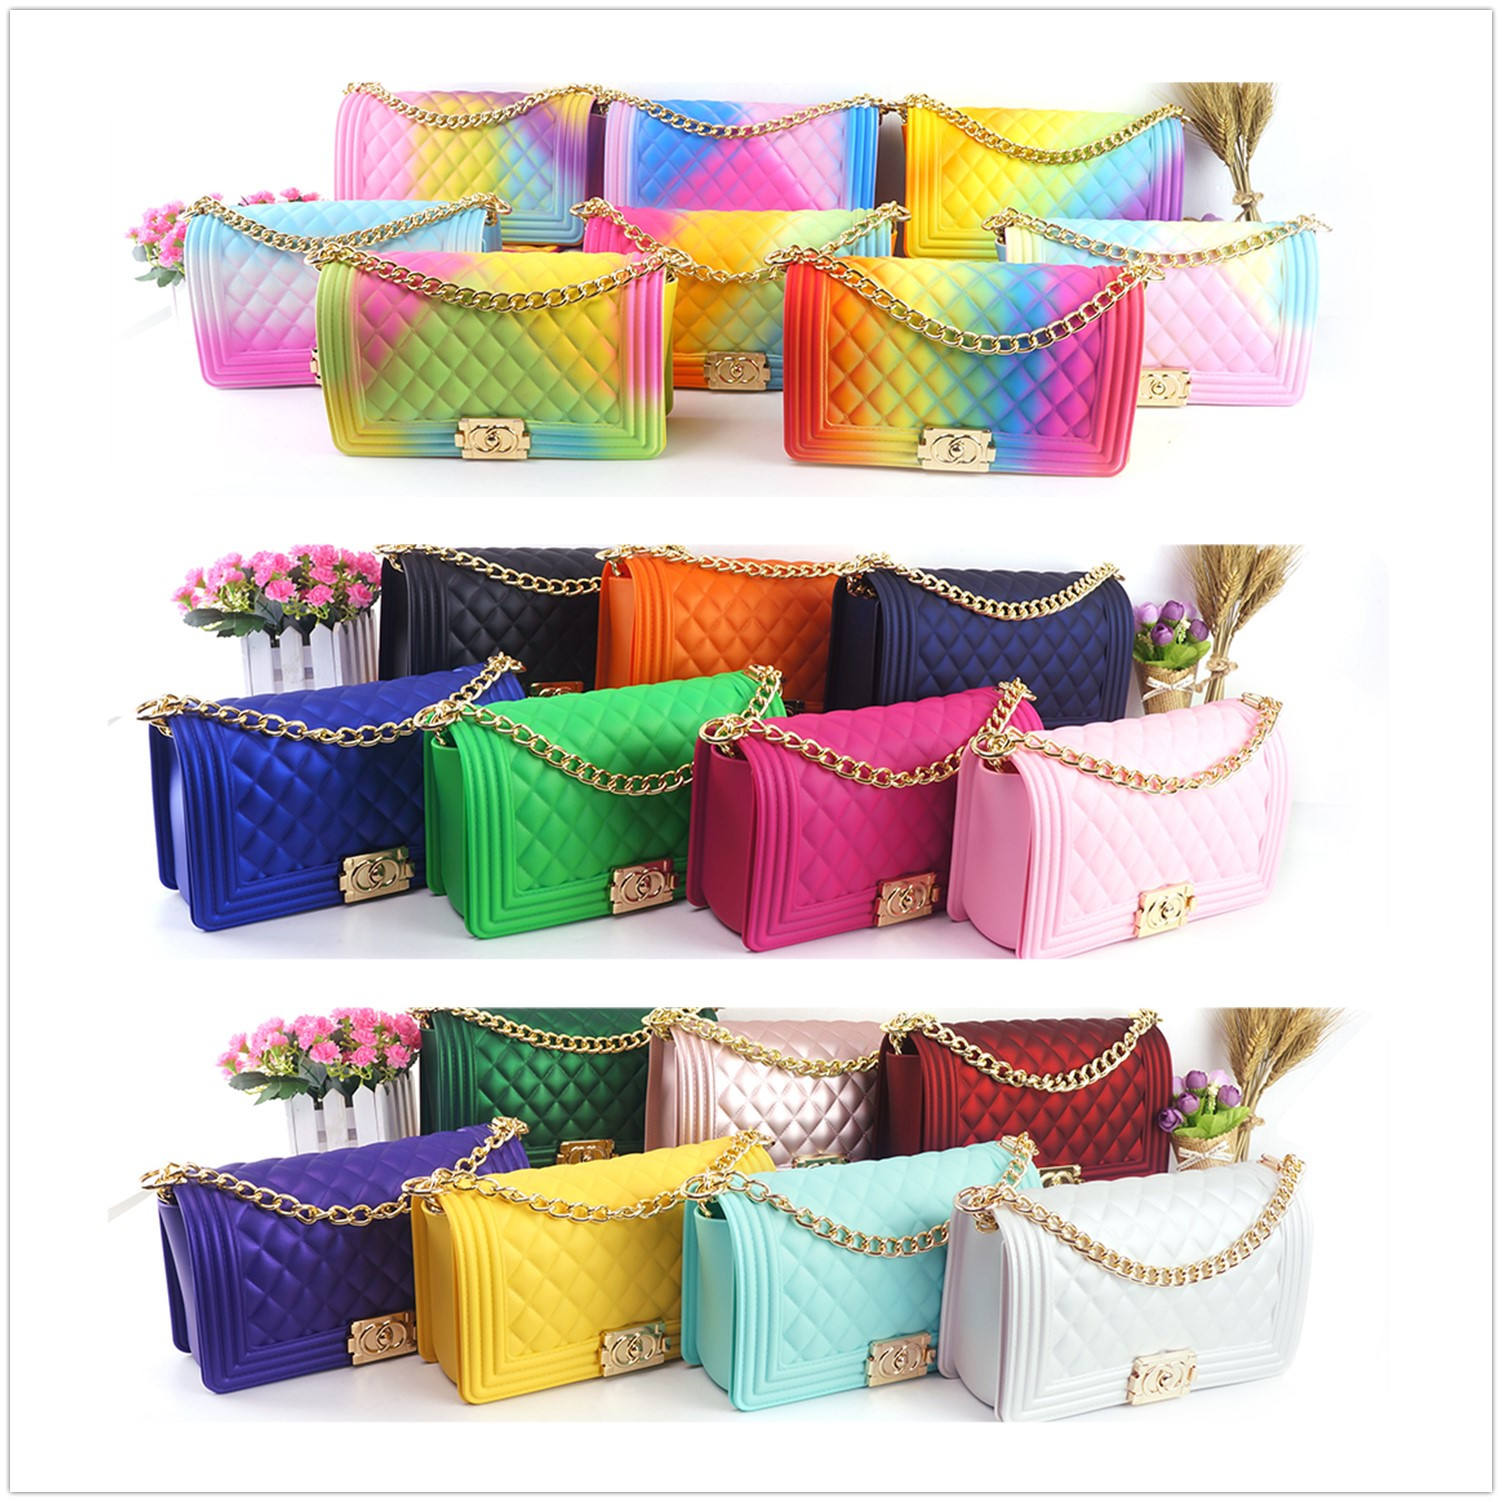 2020 Fashion luxury rainbow hand bags chain lady colorful candy pvc bags women handbags ladies jelly purse and handbags